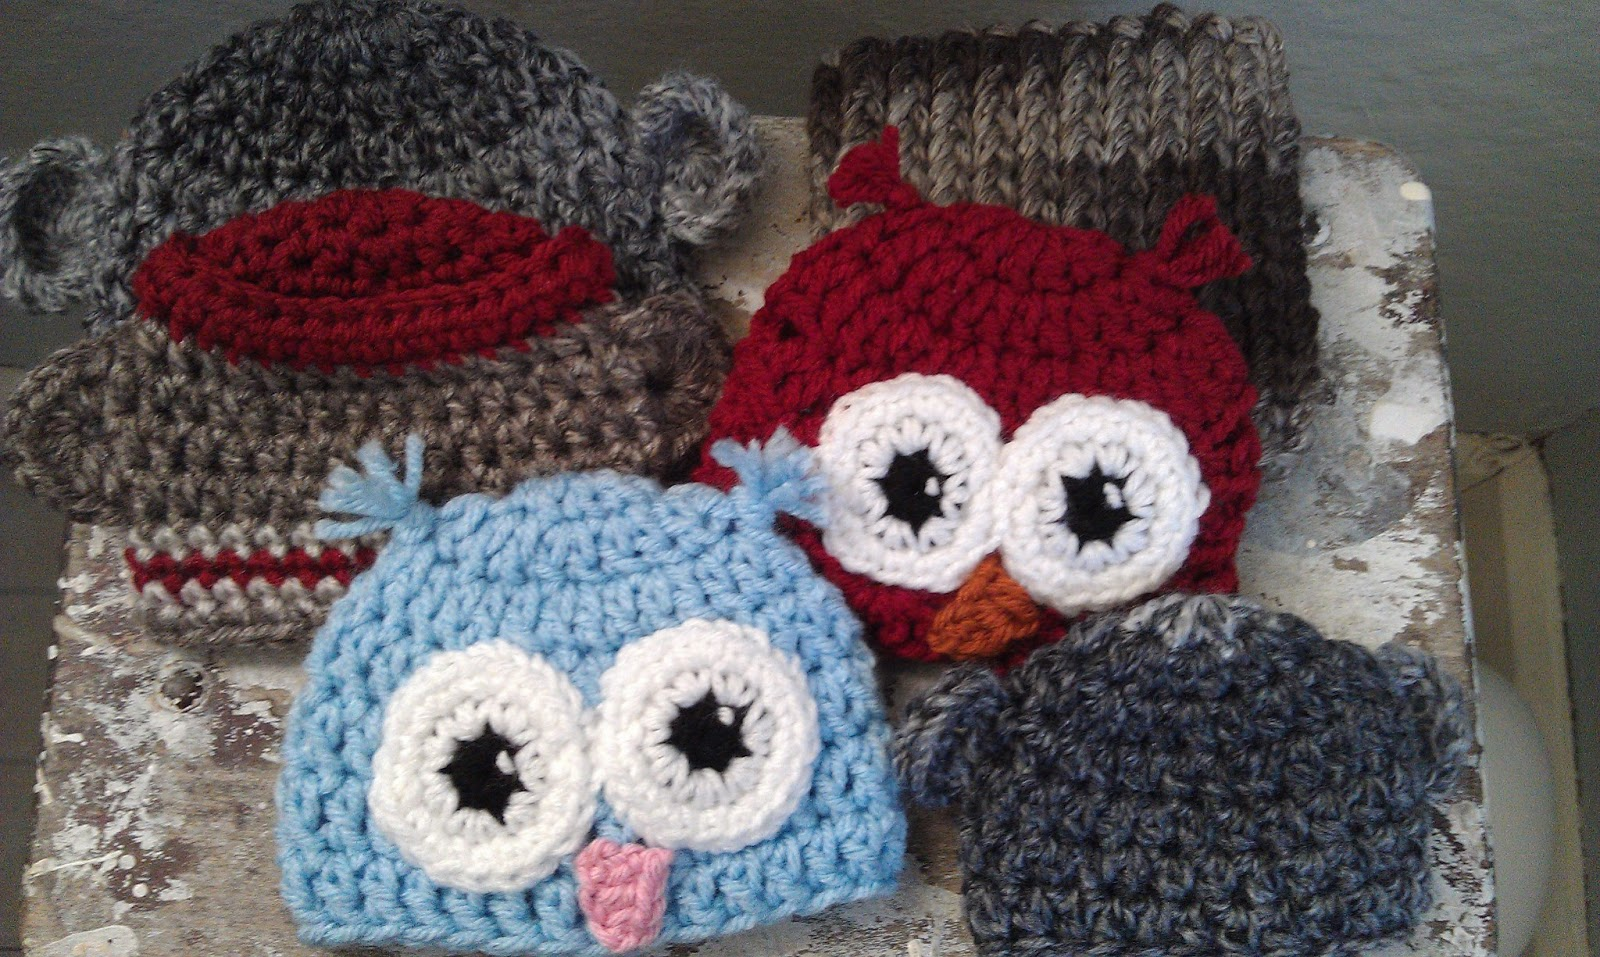 Crochet Pattern For Newborn Owl Hat : Niccupp Crochet: Preemie Owl Hat - Free Crochet Pattern